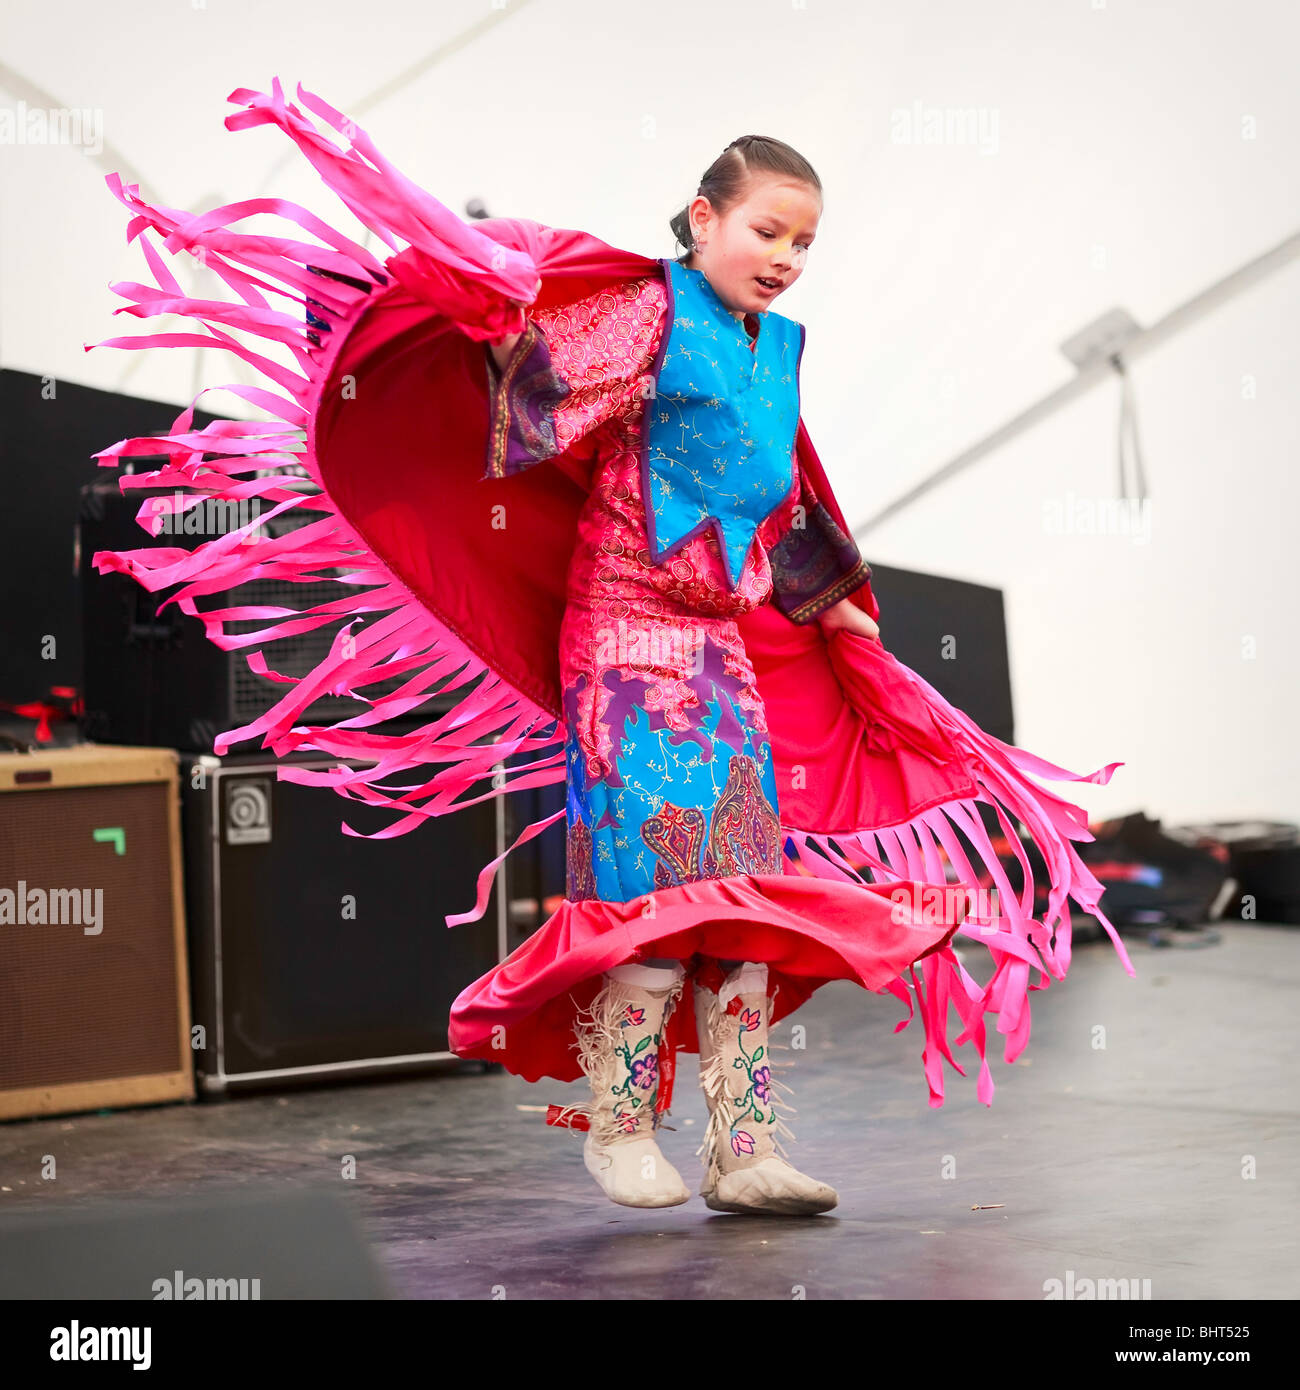 Young Native Canadian girl dancing, Festival du Voyageur, Winnipeg, Manitoba Canada. - Stock Image